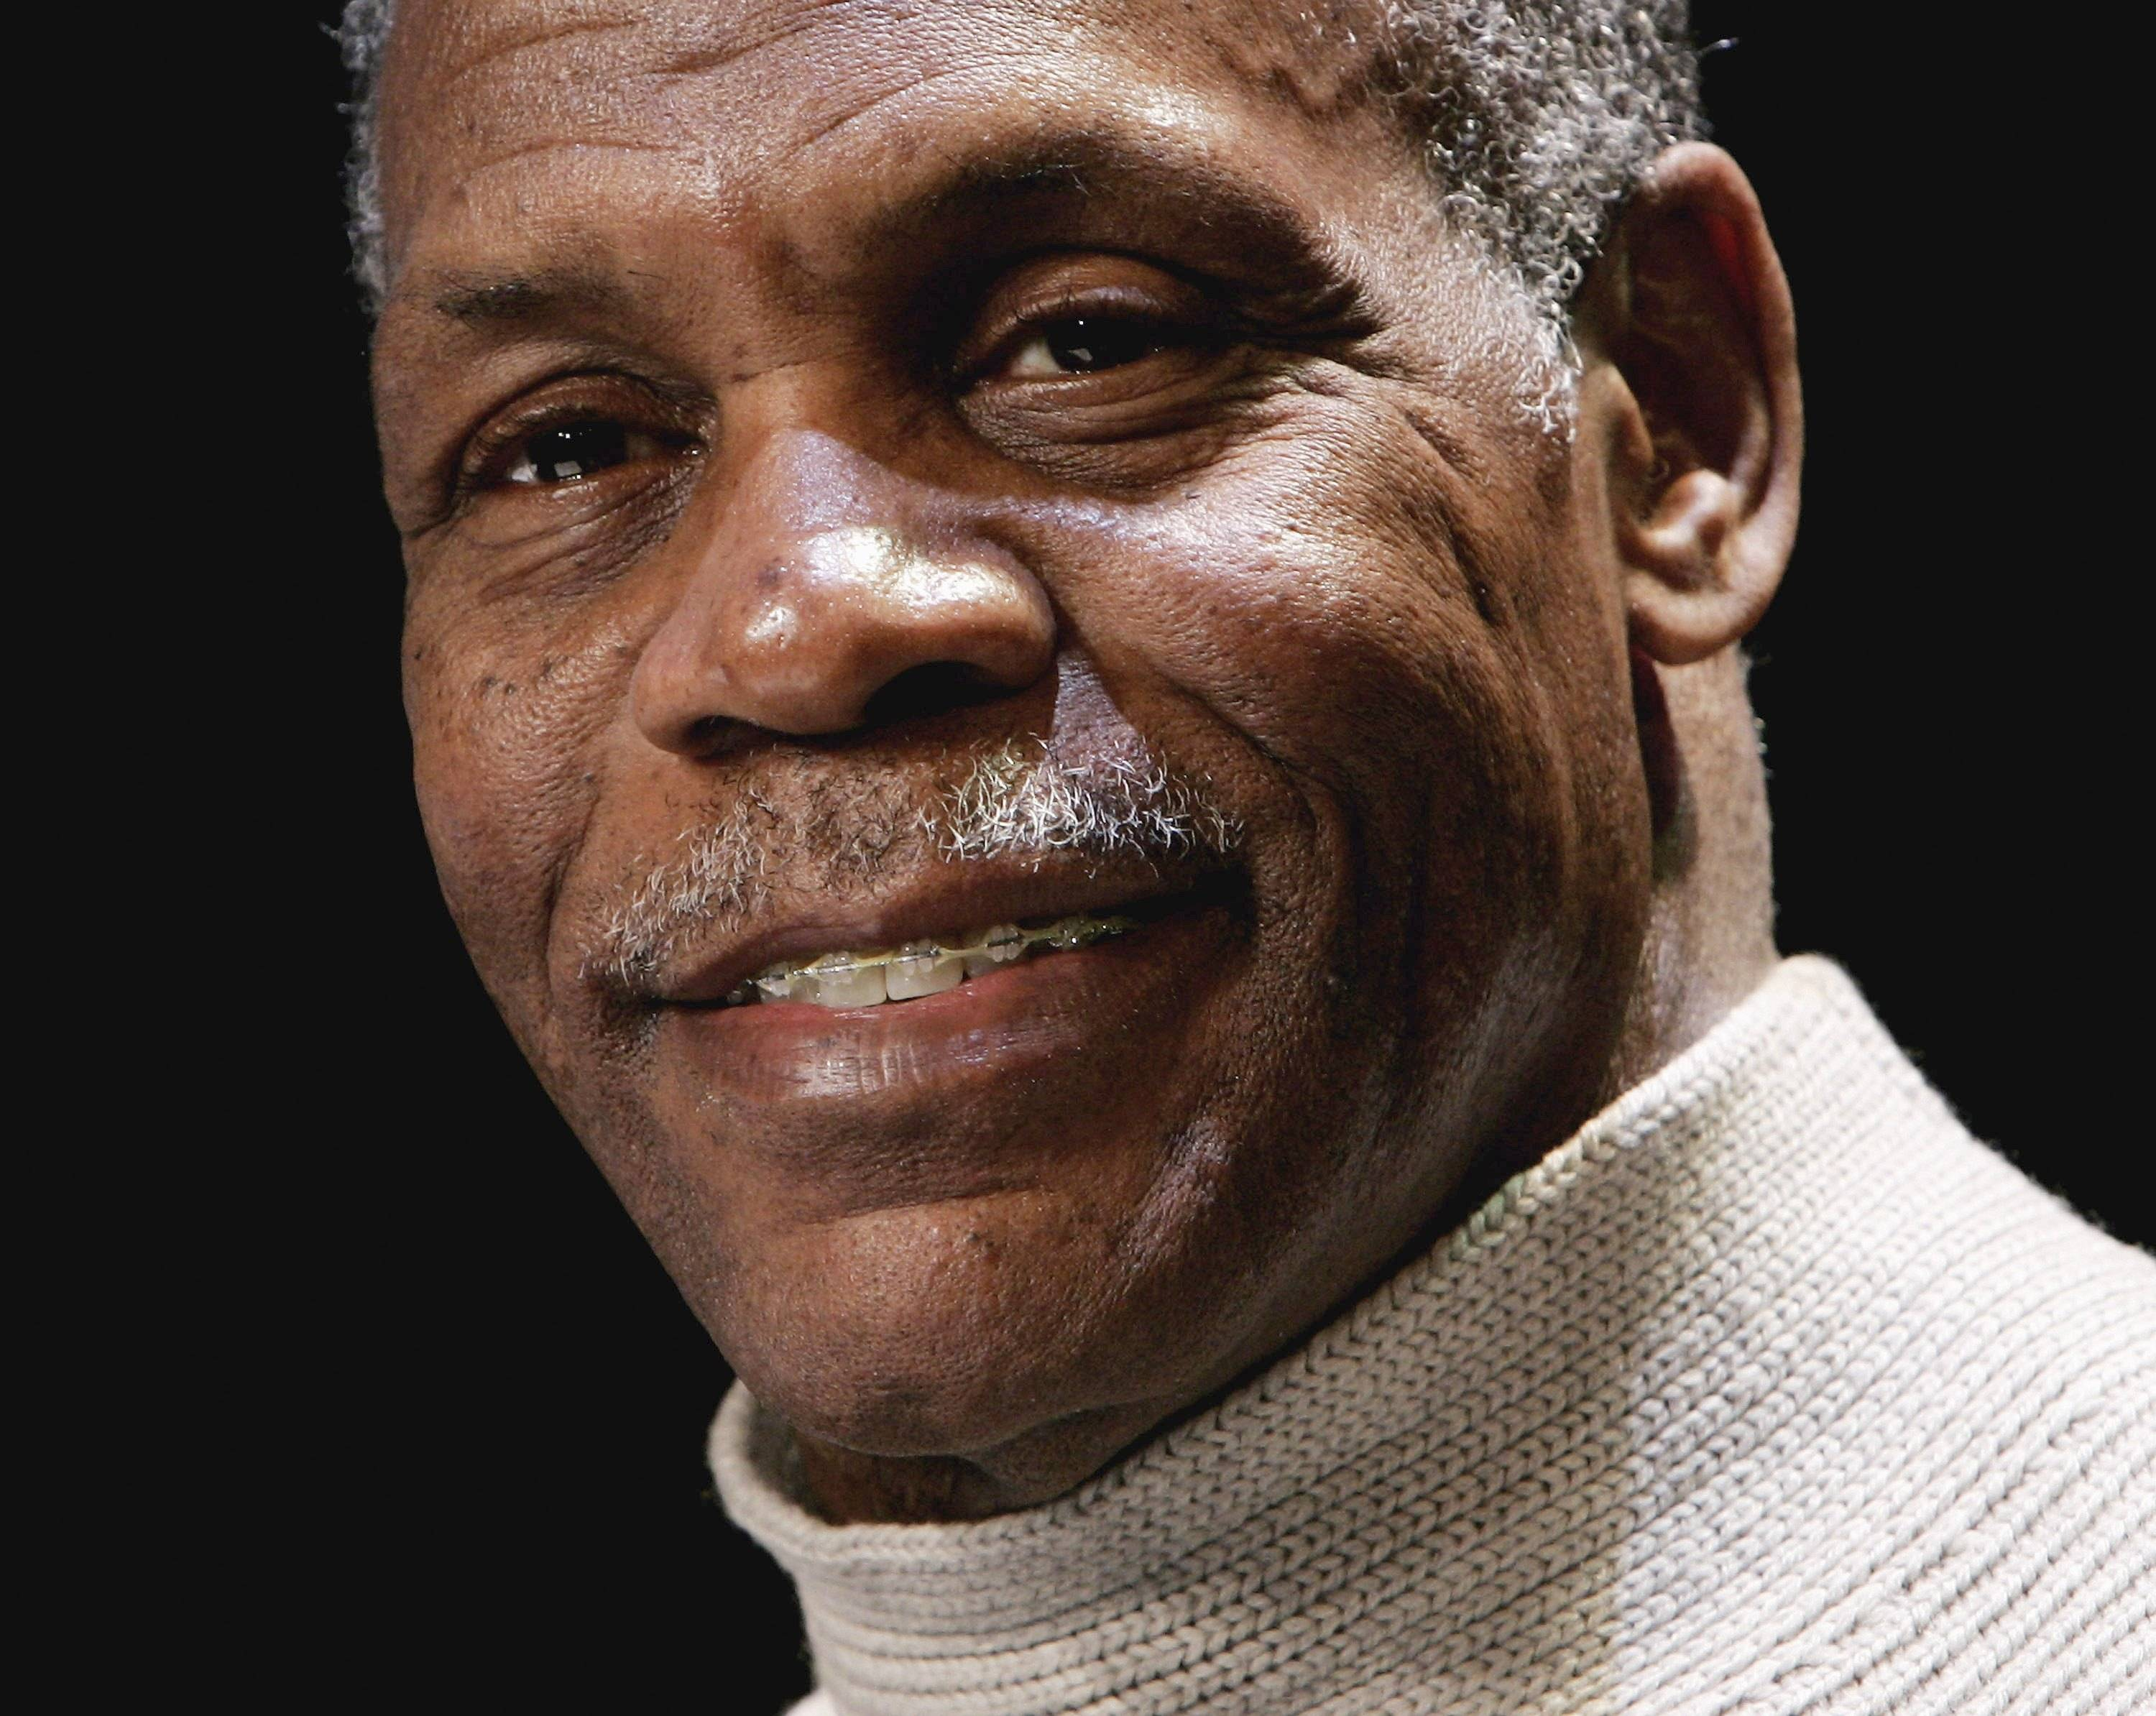 Danny Glover Widescreen for desktop